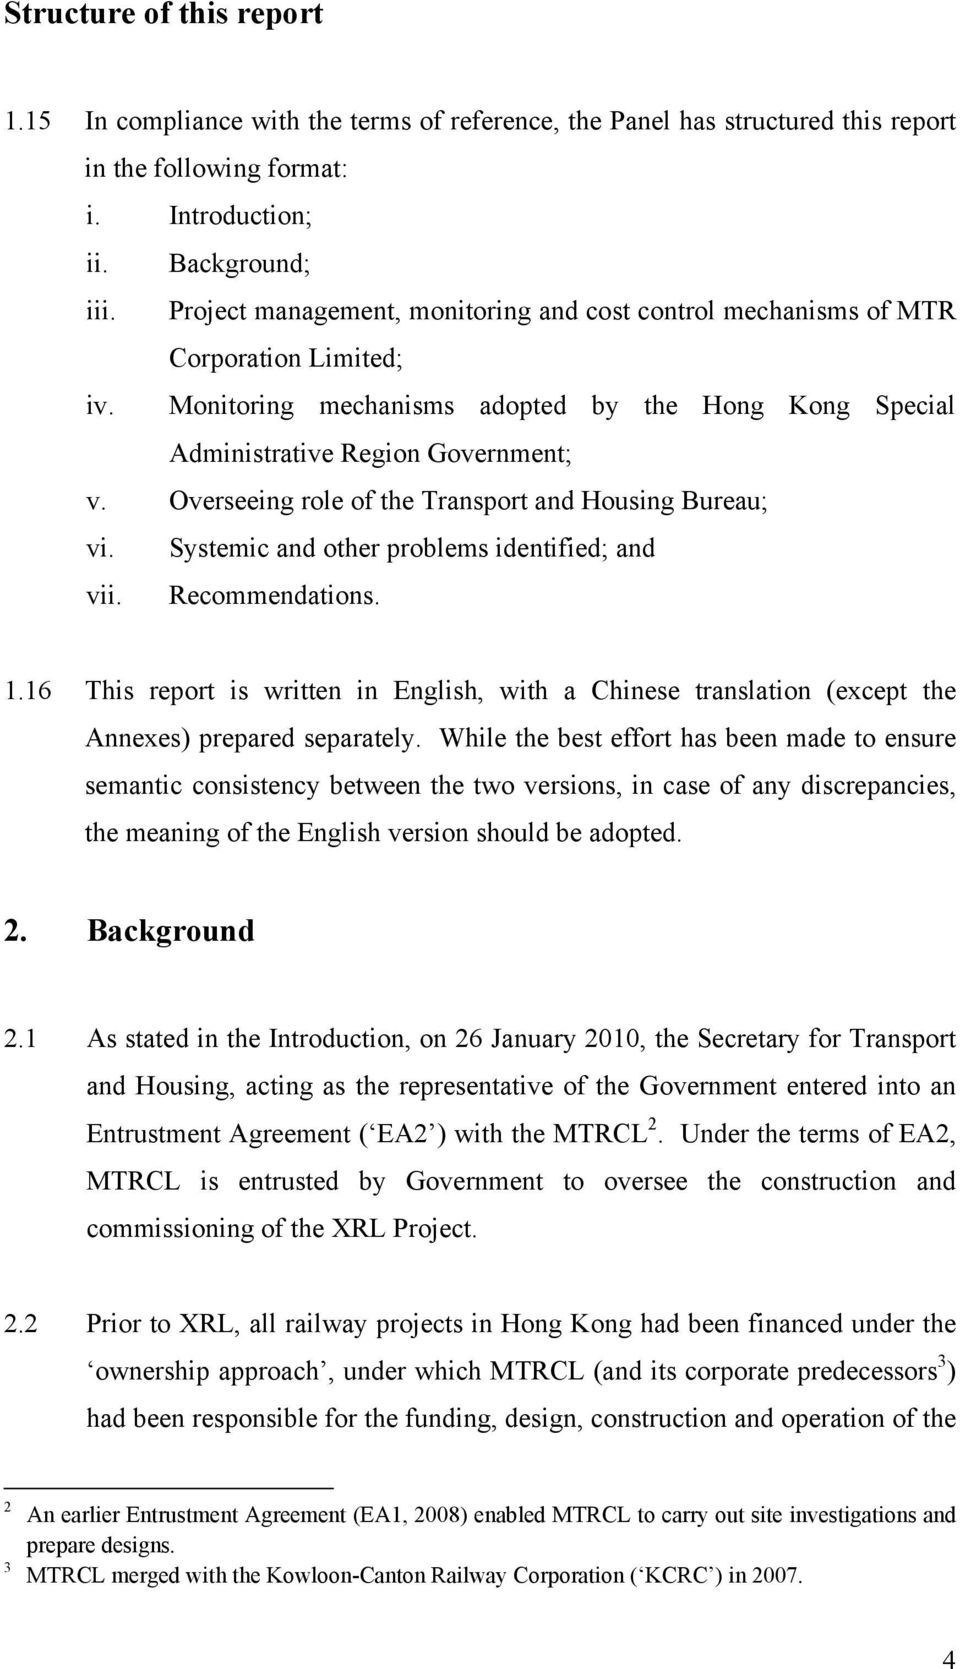 the key problems and recommendations for kowloon canton railway corporation kcrc On 2 december 2007 the kowloon-canton railway corporation run under the mtr name but are operated by kowloon facing the problem on no data source.